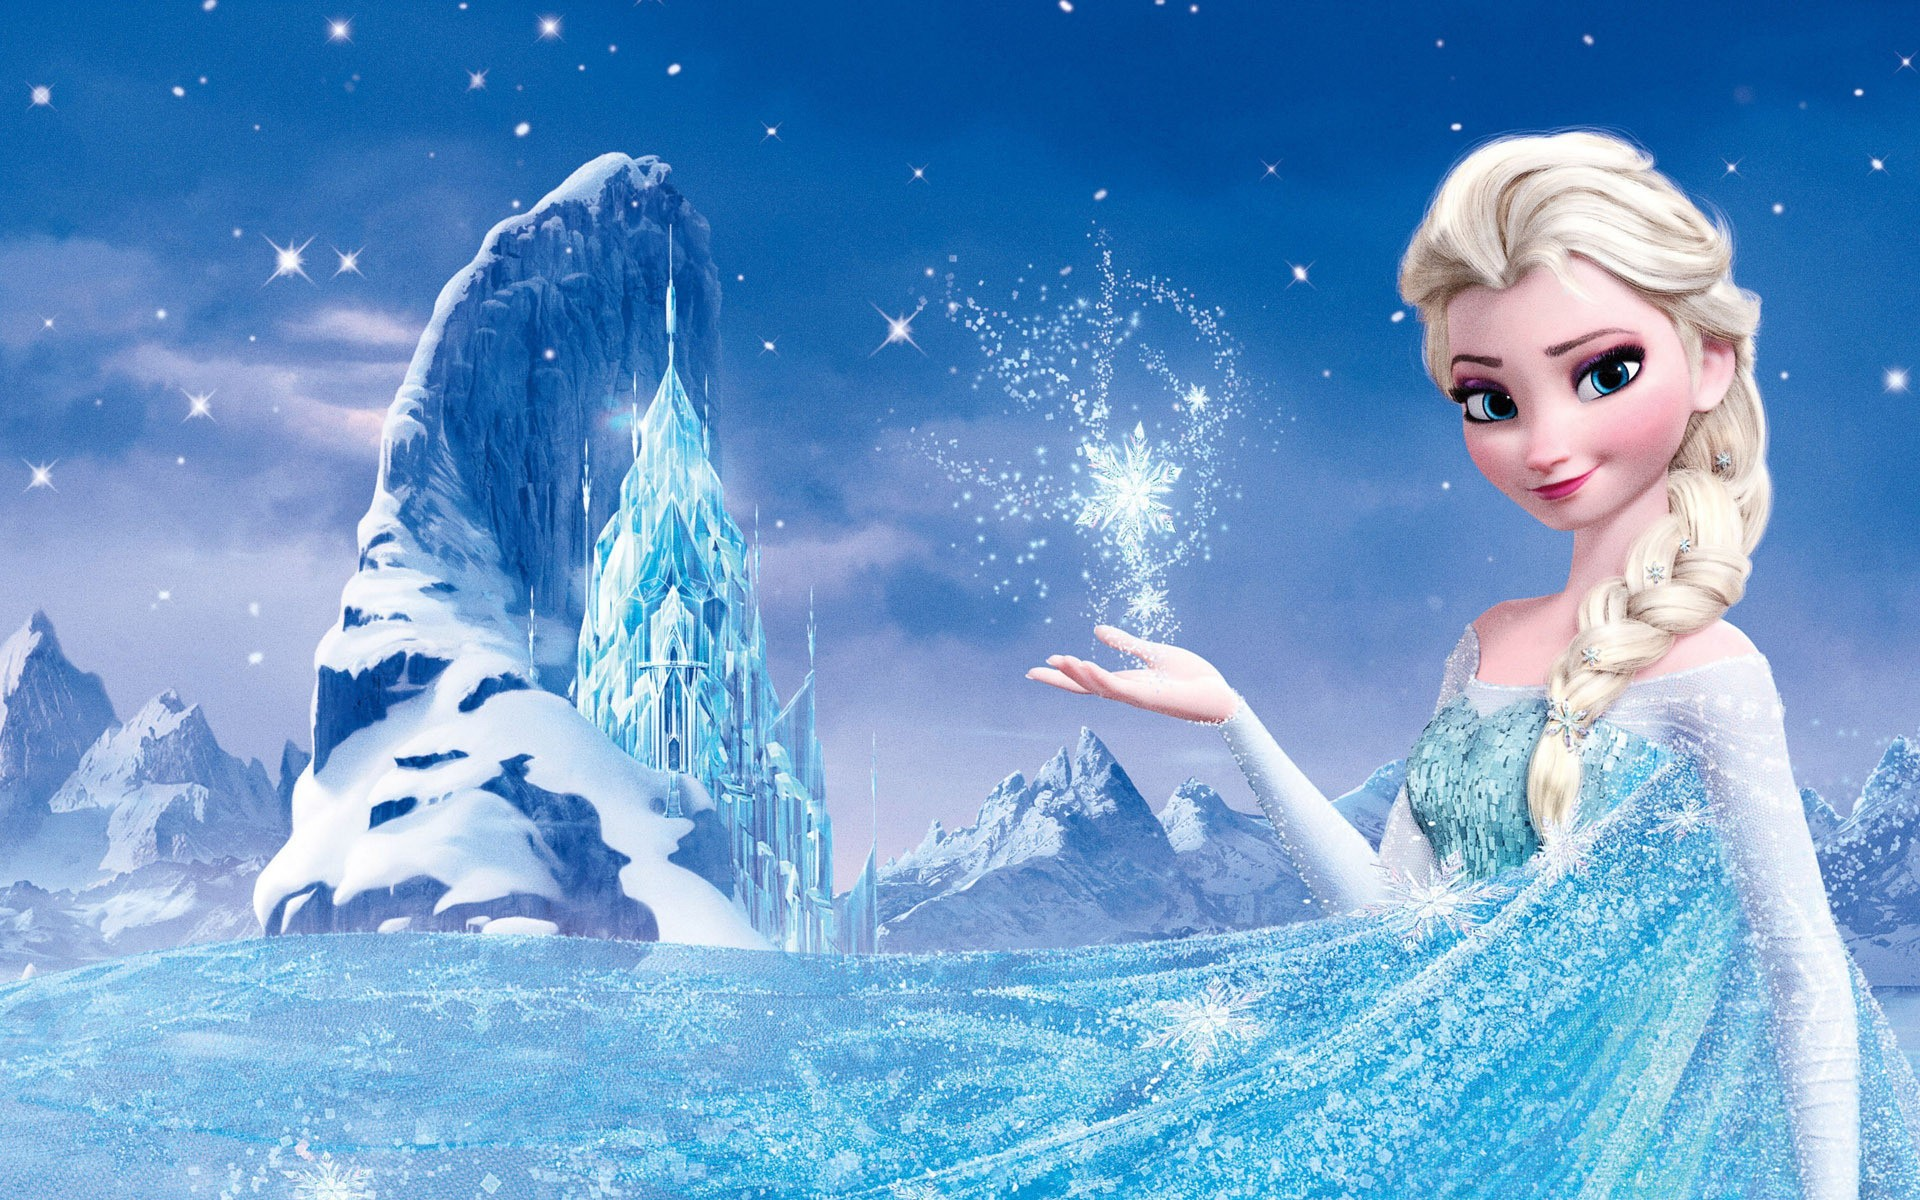 image of olaf from frozen